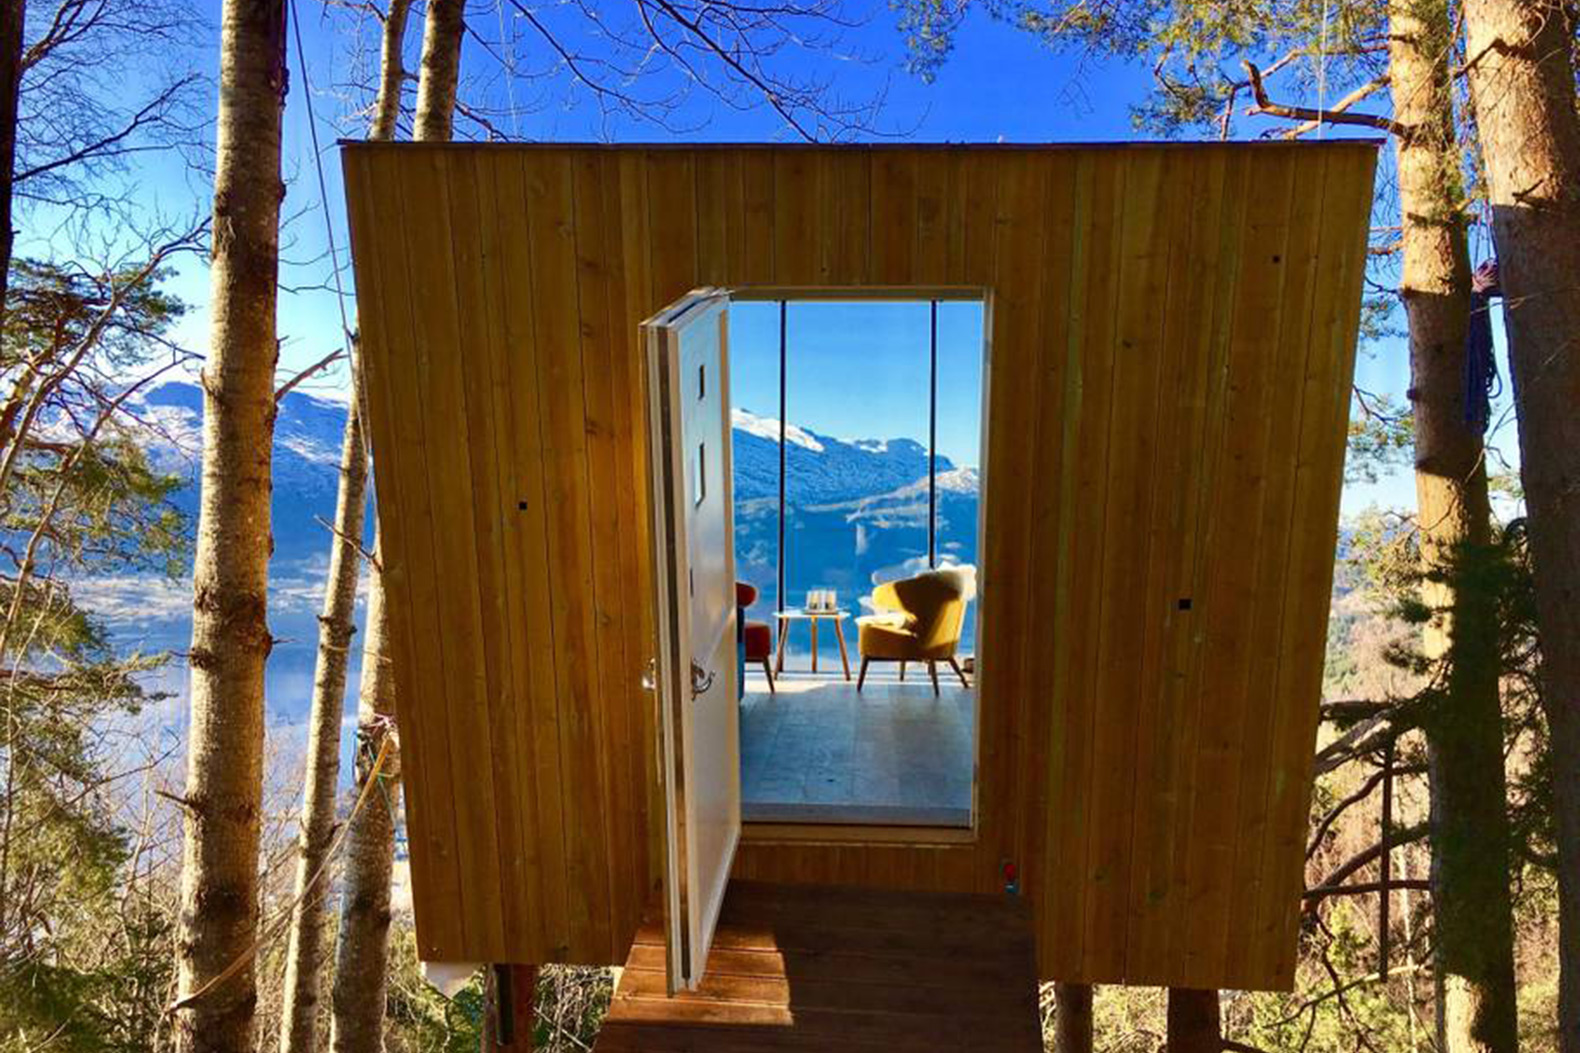 This itsy-bitsy treehouse in Norway offers the ultimate off-grid escape